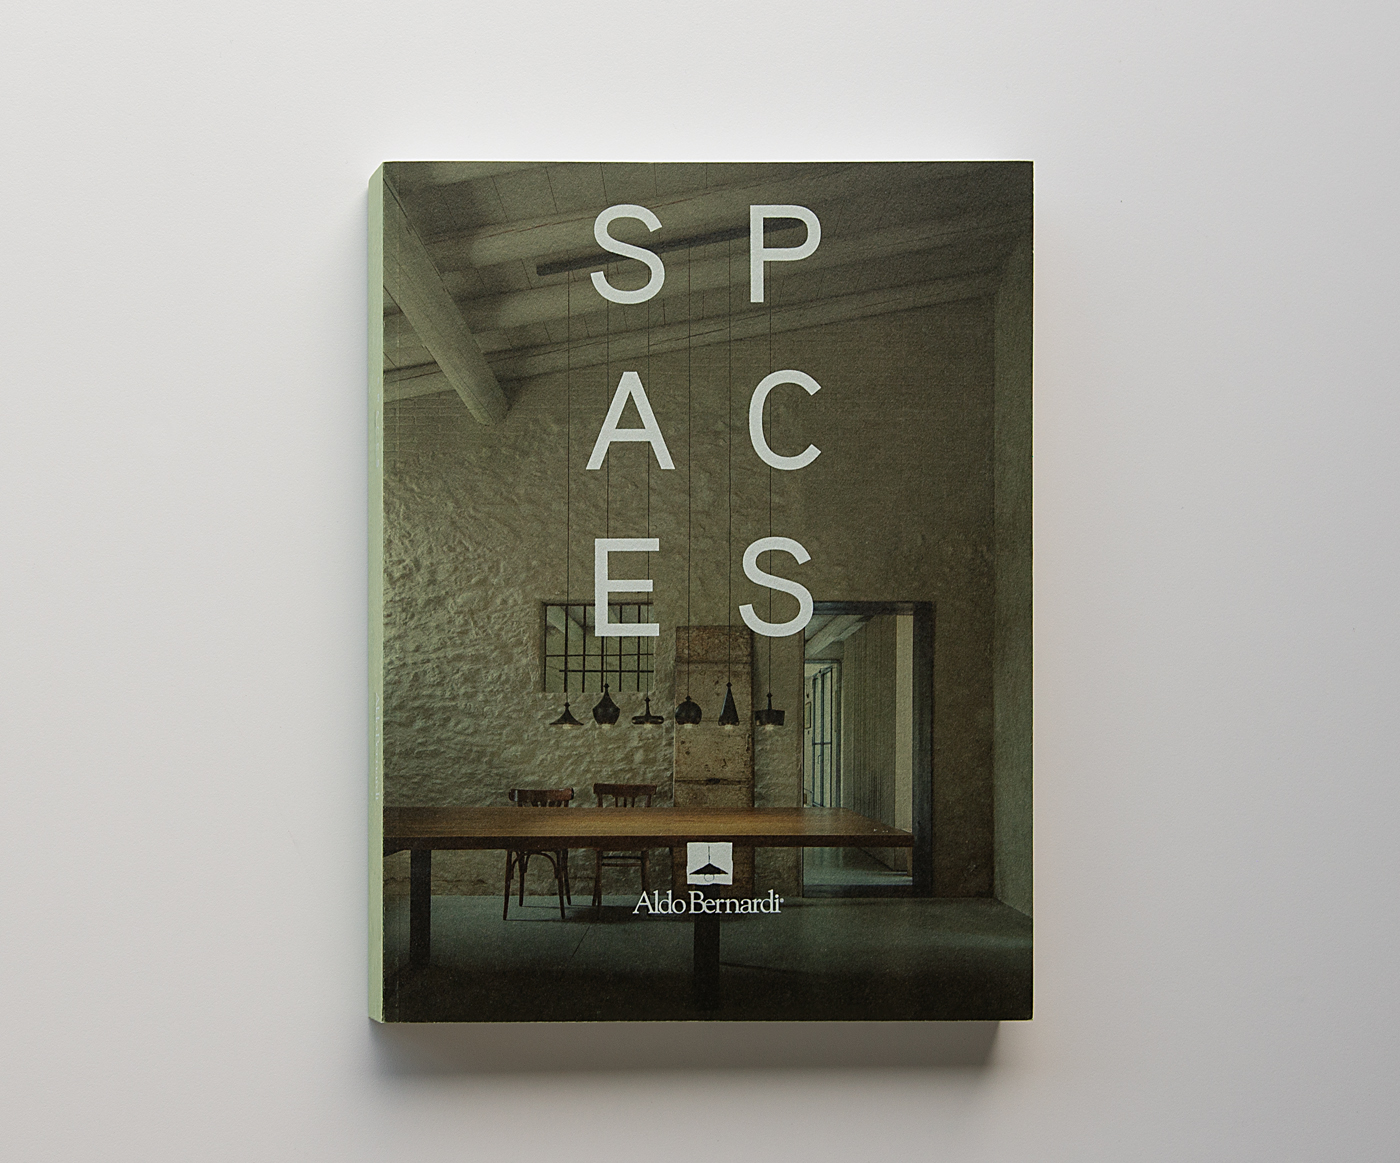 ALDO BERNARDI - Spaces